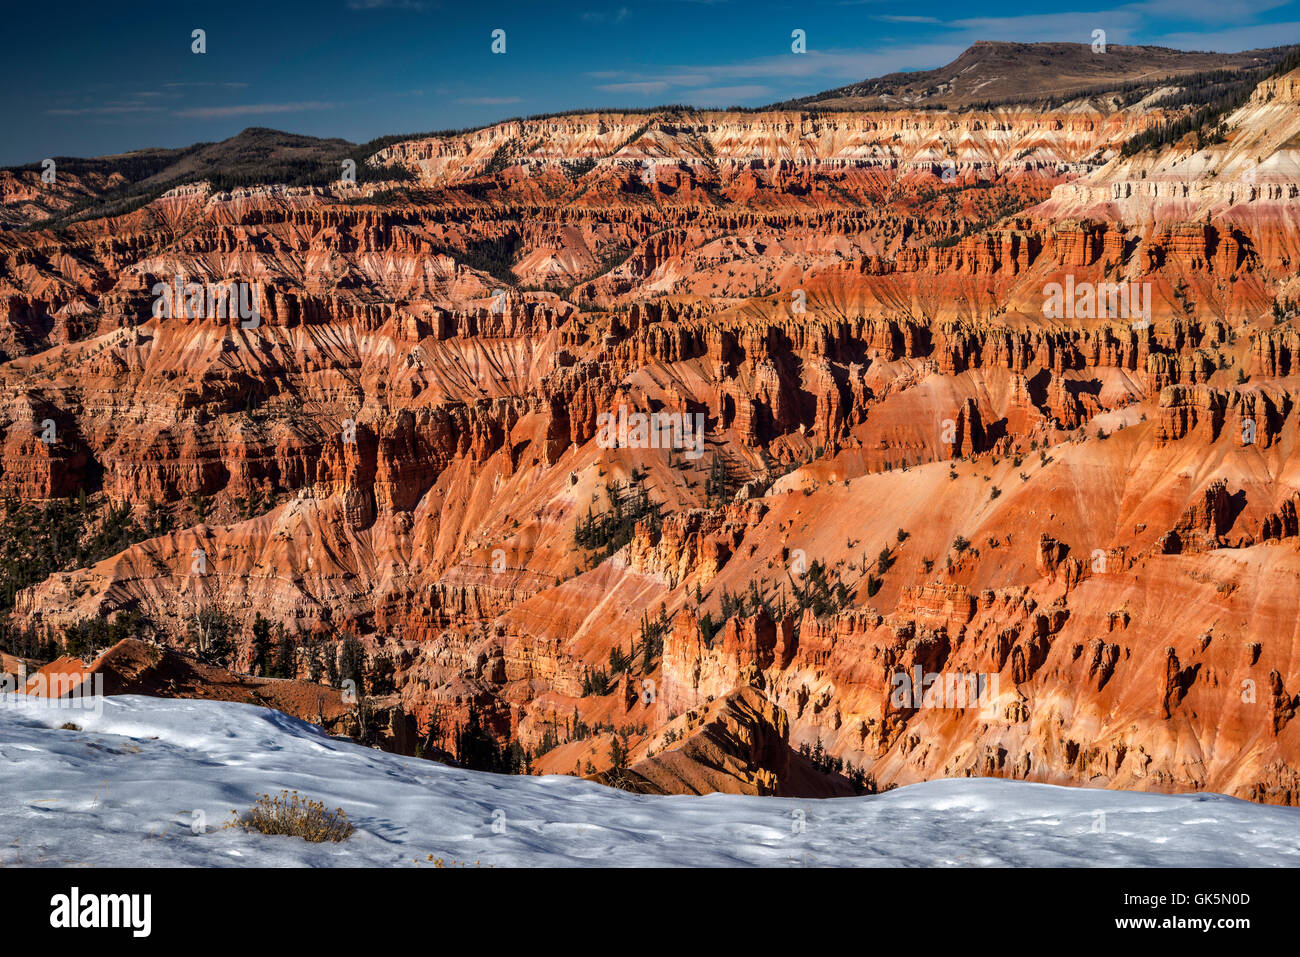 View of Cedar Breaks Amphitheater in late October from Point Supreme in Cedar Breaks National Monument, Utah, USA - Stock Image